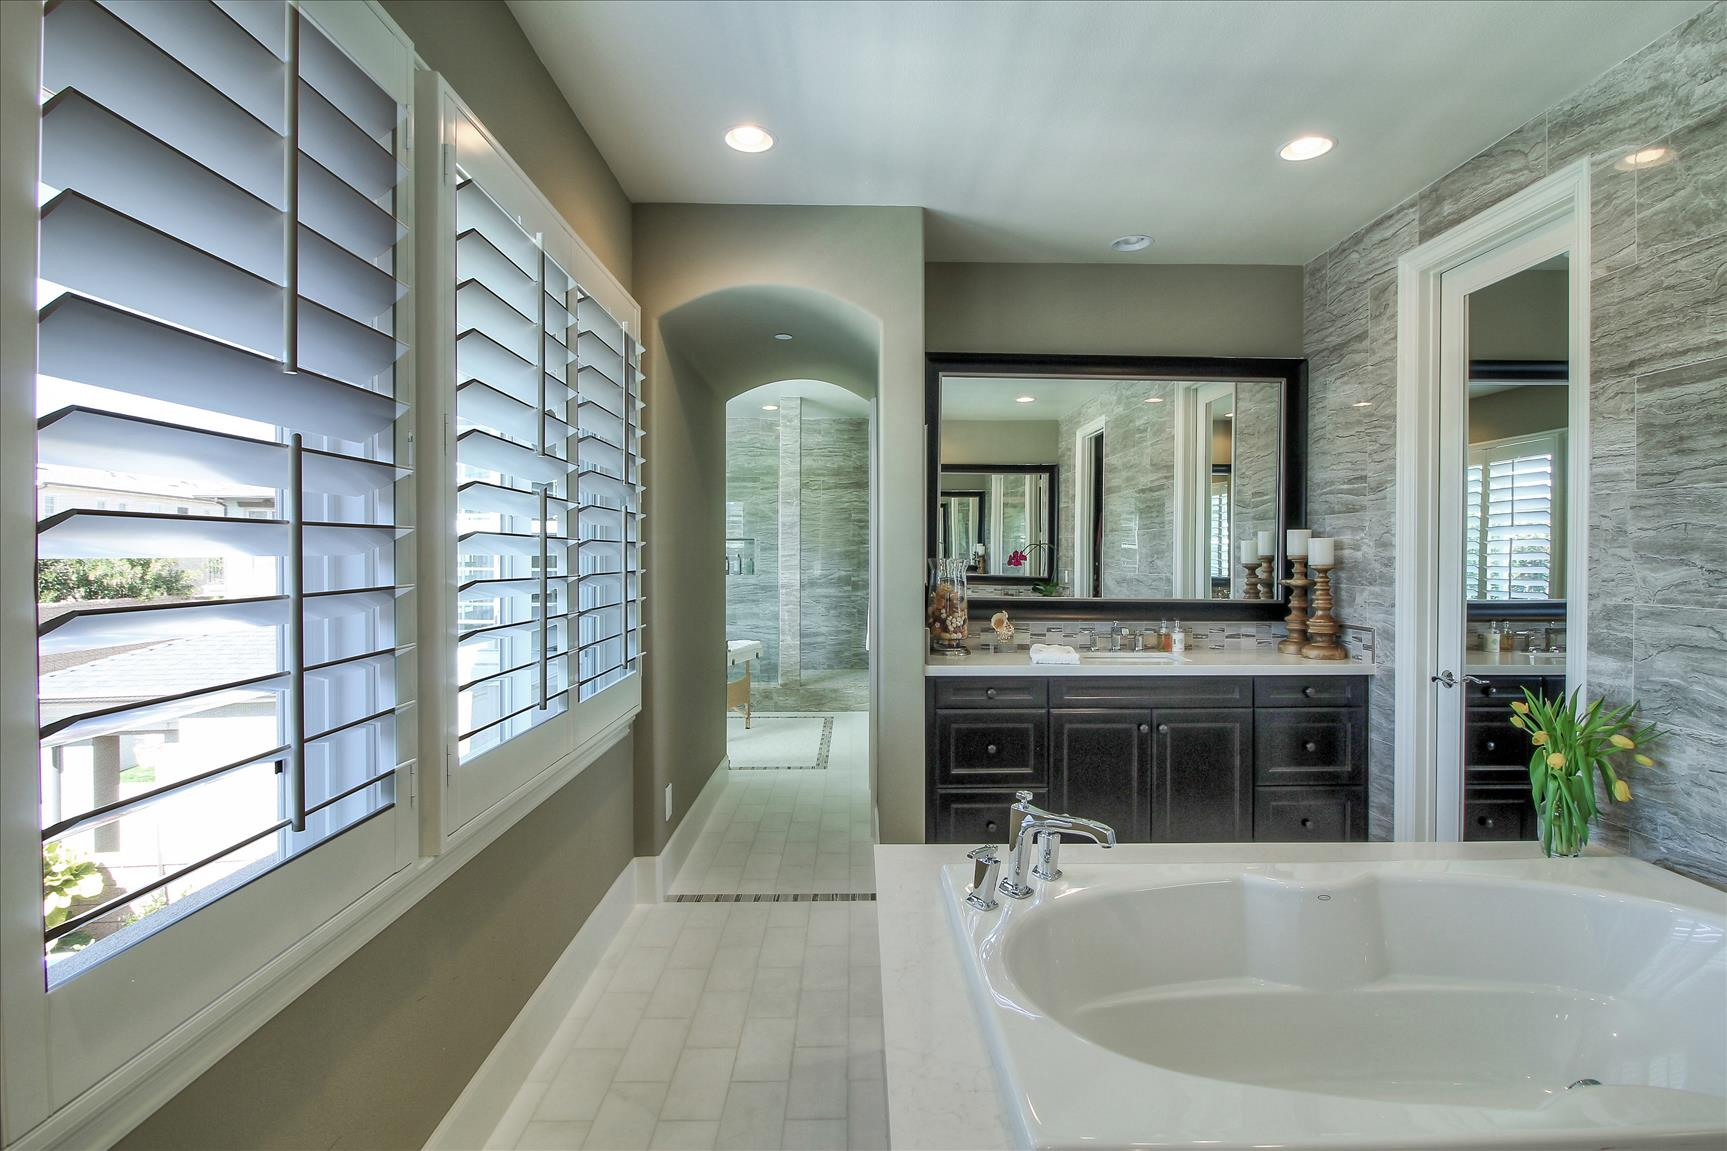 17471 Kennebunk Ln, Huntington Beach, CA  9264960.jpg